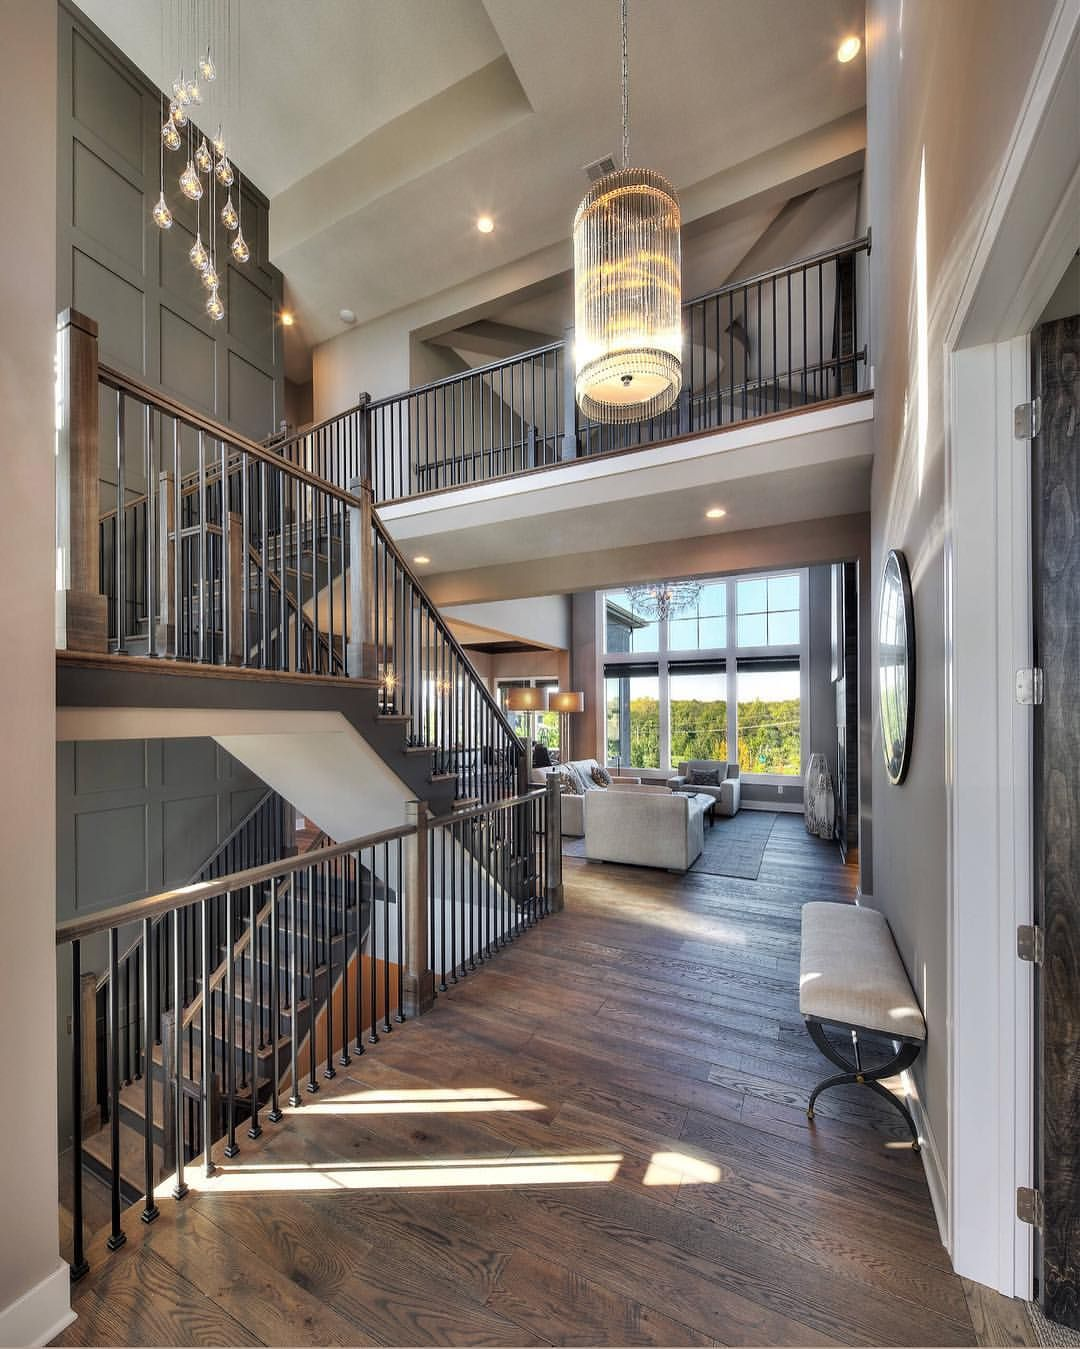 Swipe left to see more of this home by angela arnone orel location kansas product disclosure below  hi my name is kate rumson and   the also interesting simple house stair design ideas decorating rh pinterest